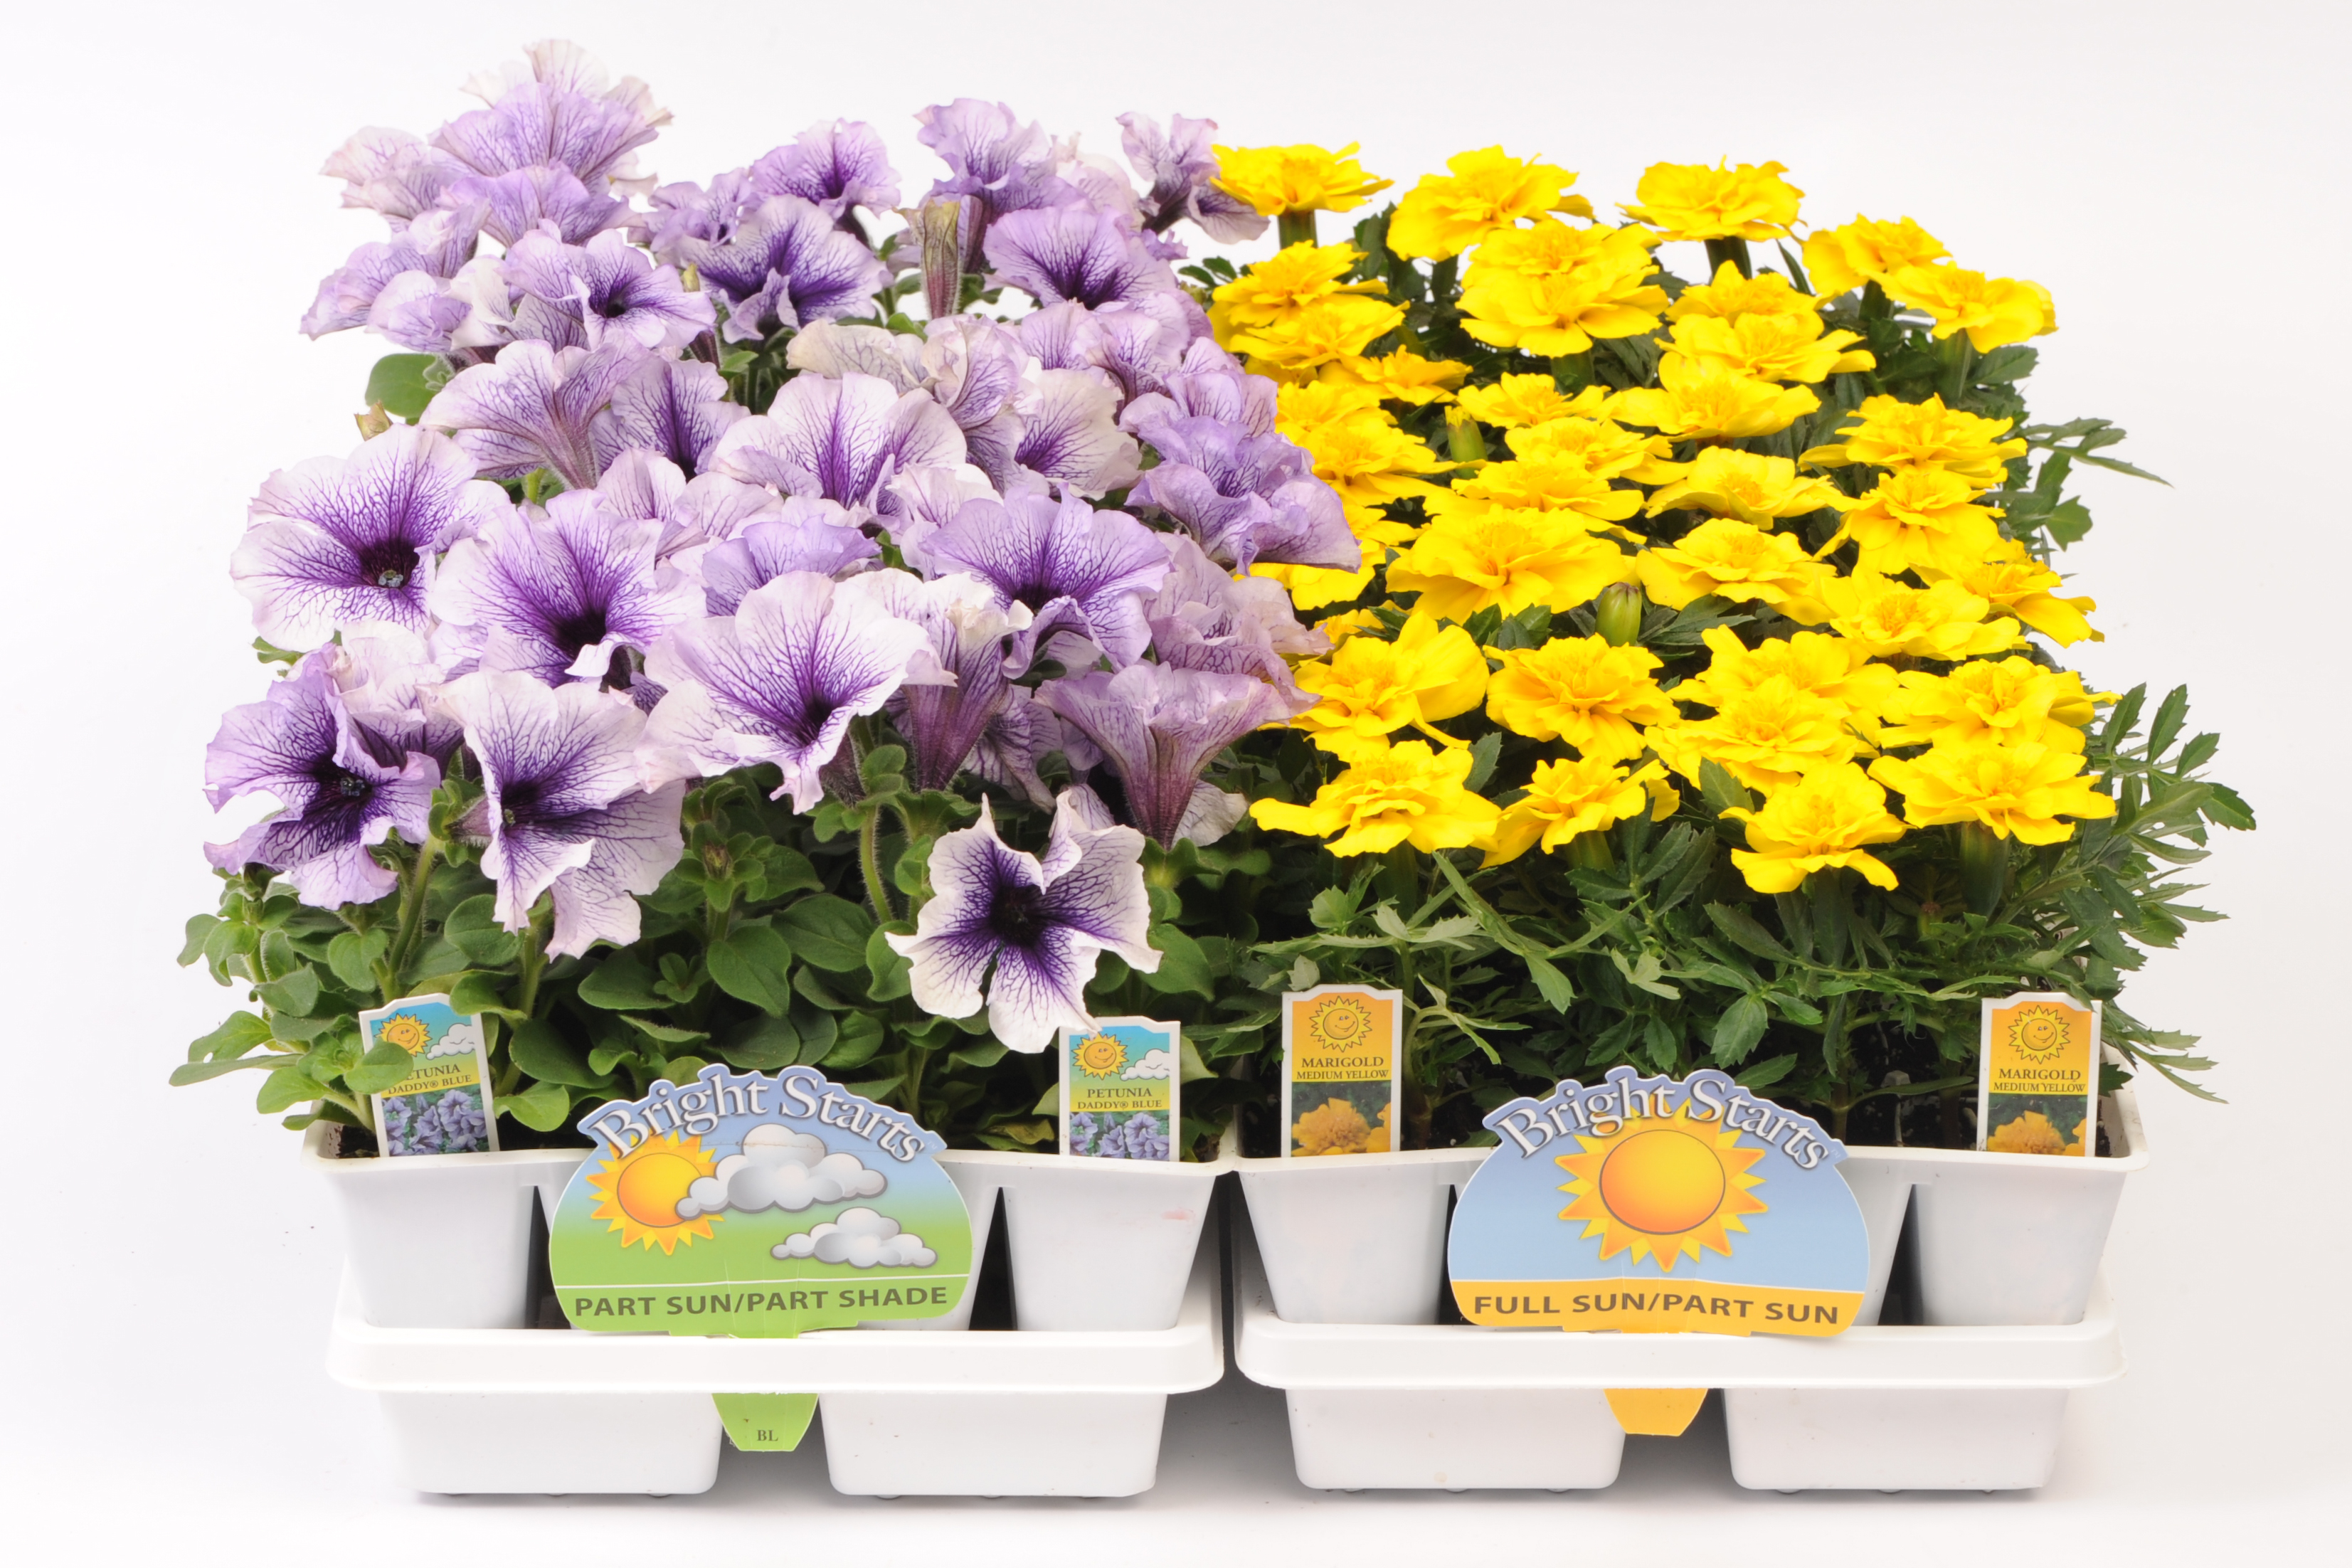 606 Jumbo Bedding Plants Wholesale Bedding Plants